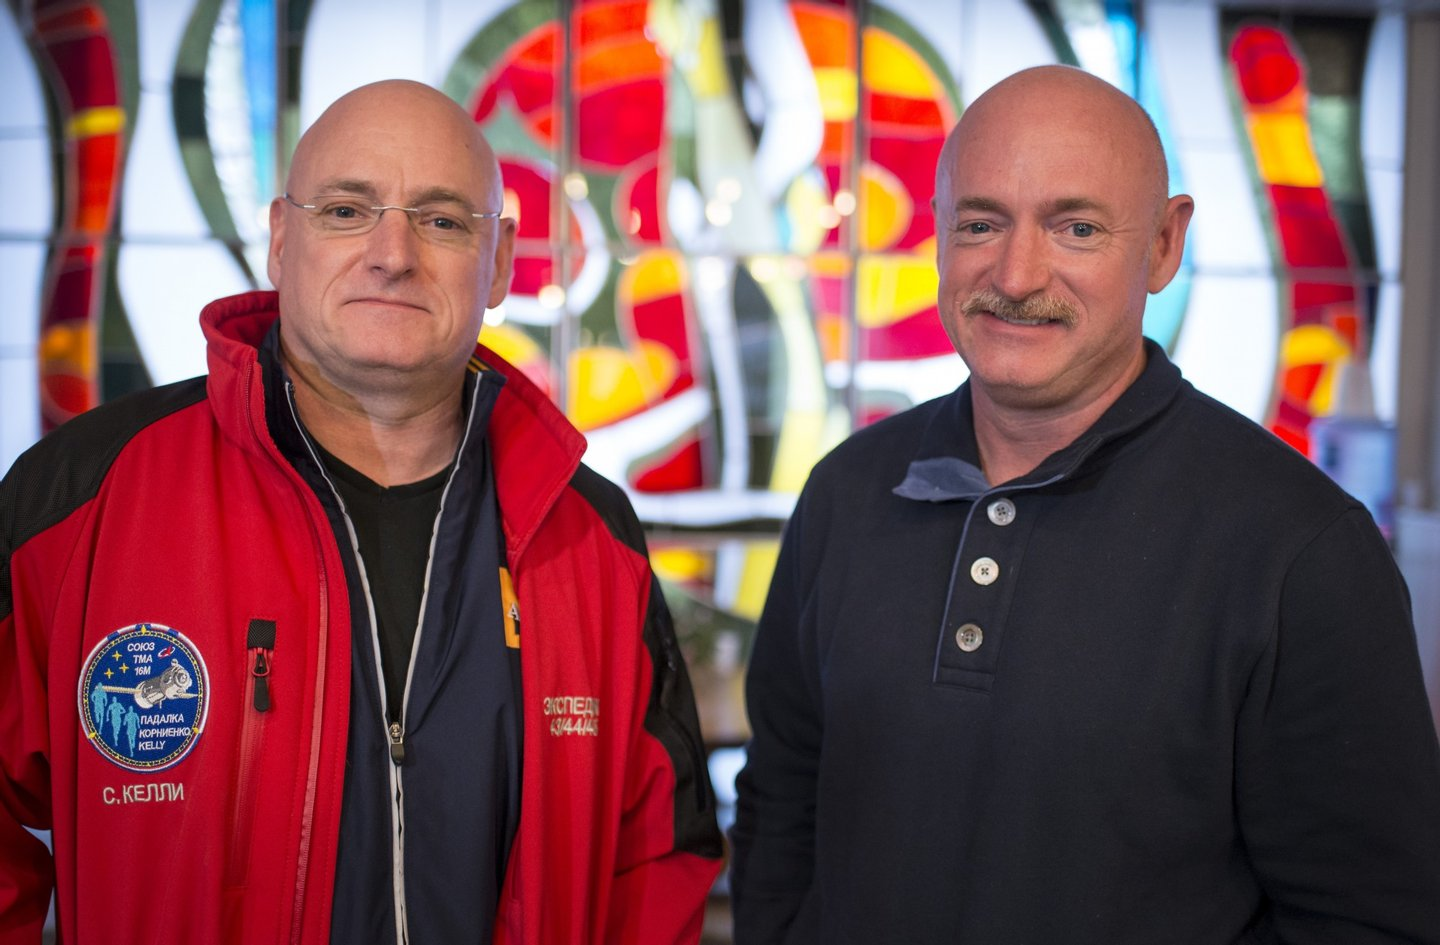 BAIKONUR, KAZAKHSTAN - MARCH 26: Expedition 43 NASA Astronaut Scott Kelly, left, and his identical twin brother Mark Kelly, pose for a photograph Thursday, March 26, 2015 at the Cosmonaut Hotel in Baikonur, Kazakhstan. Scott Kelly, and Russian Cosmonauts Mikhail Kornienko, and Gennady Padalka of the Russian Federal Space Agency (Roscosmos) are scheduled to launch to the International Space Station in the Soyuz TMA-16M spacecraft from the Baikonur Cosmodrome in Kazakhstan March 28, Kazakh time (March 27 Eastern time.) As the one-year crew, Kelly and Kornienko will return to Earth on Soyuz TMA-18M in March 2016. (Photo by Bill Ingalls/NASA via Getty Images)